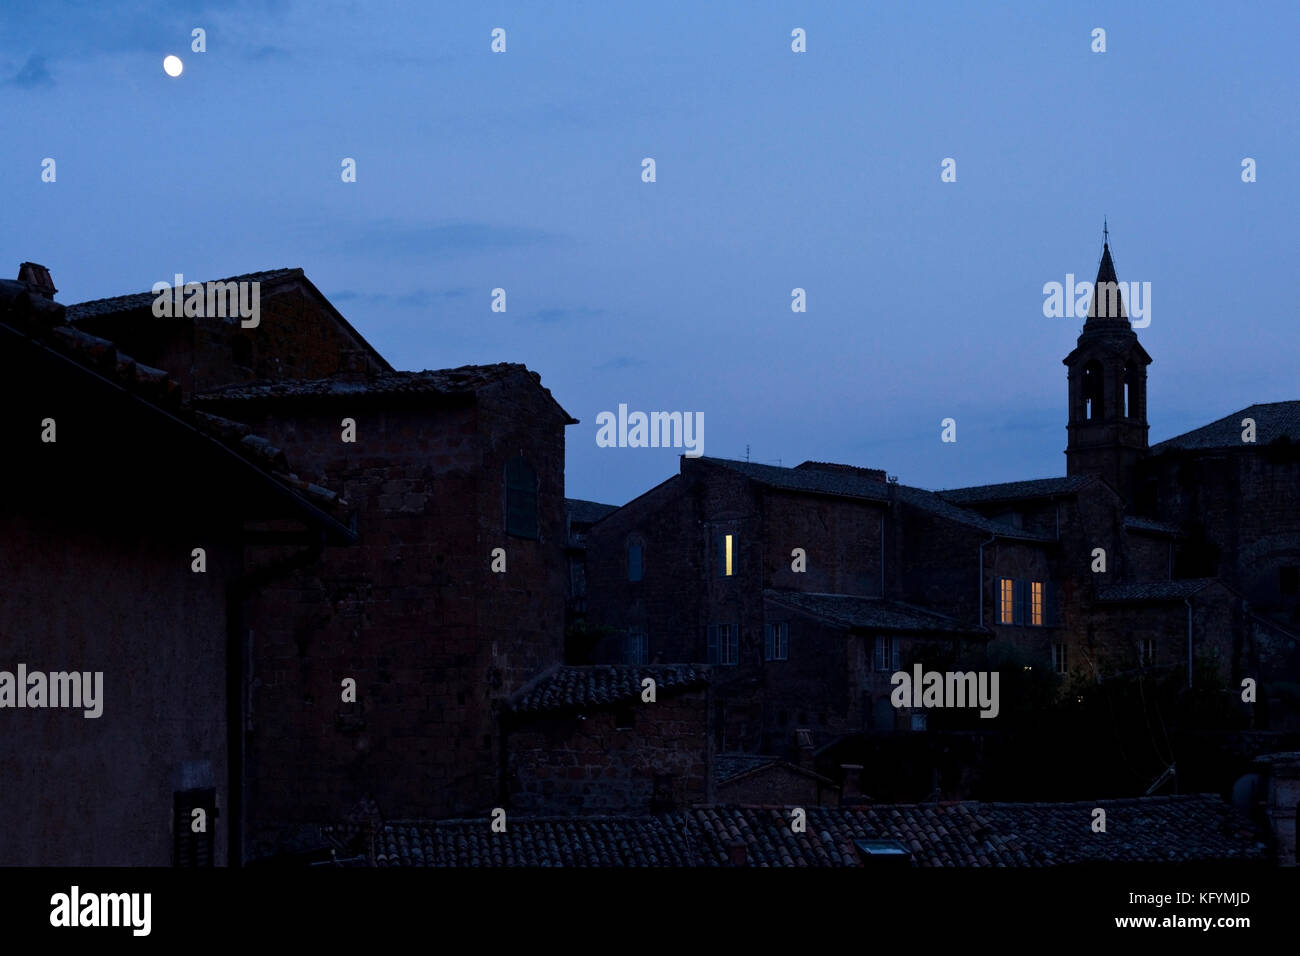 The moon rises over the Medieval Quarter in the Umbrian town of Orvieto, Italy. - Stock Image